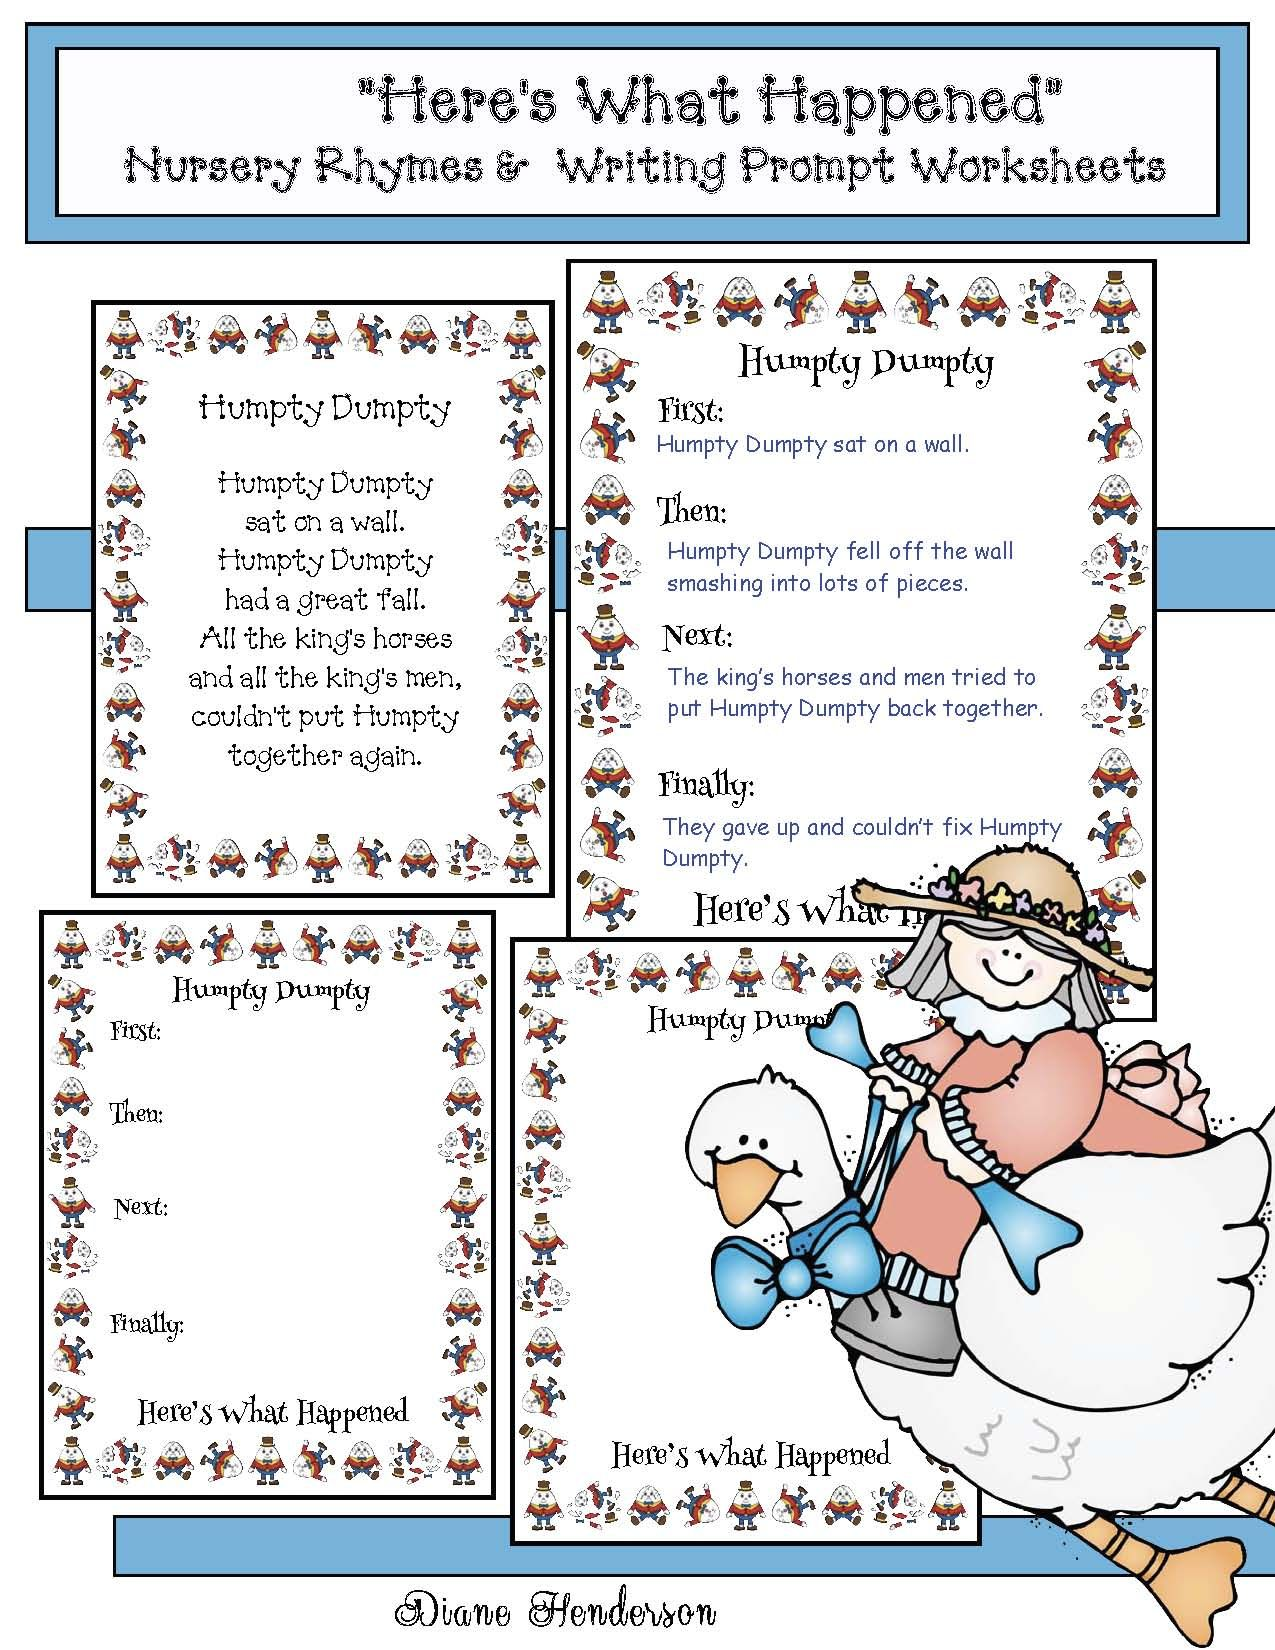 worksheet Beginning Middle End Worksheet nursery rhymes writing prompt worksheets for 10 different interesting way to check comprehension practice beginning middle end transitional completed projects make a sweet b